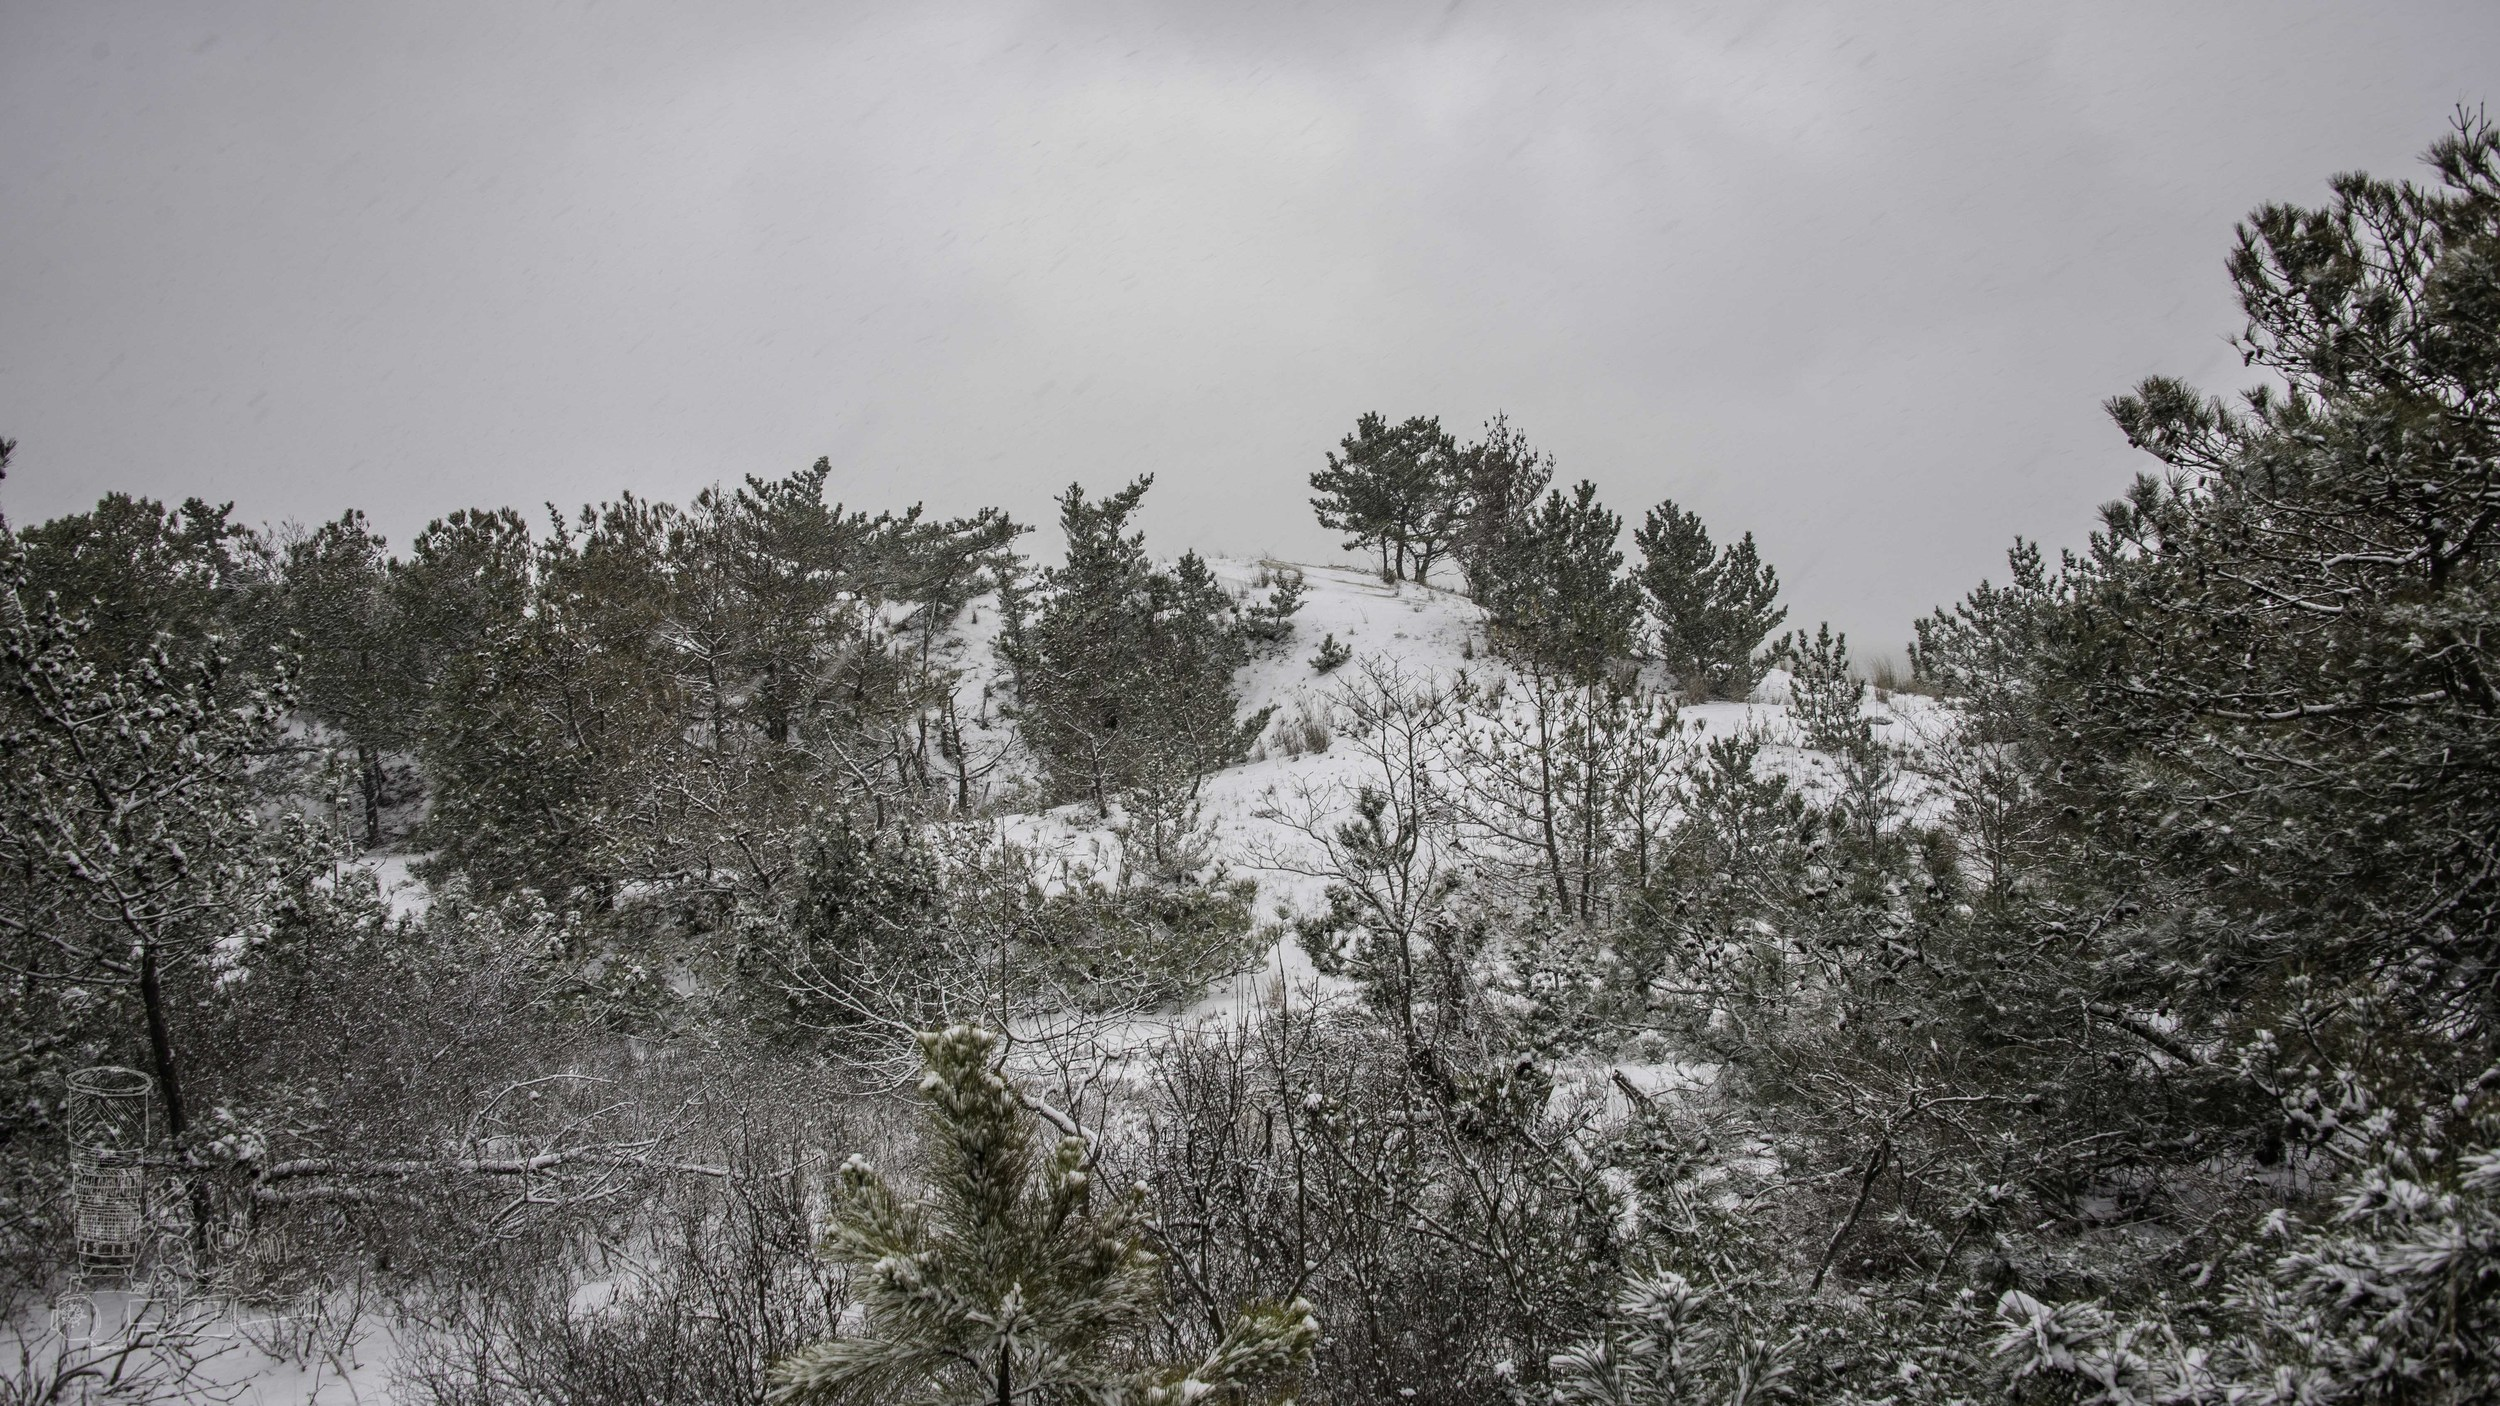 Snowing on the Pines